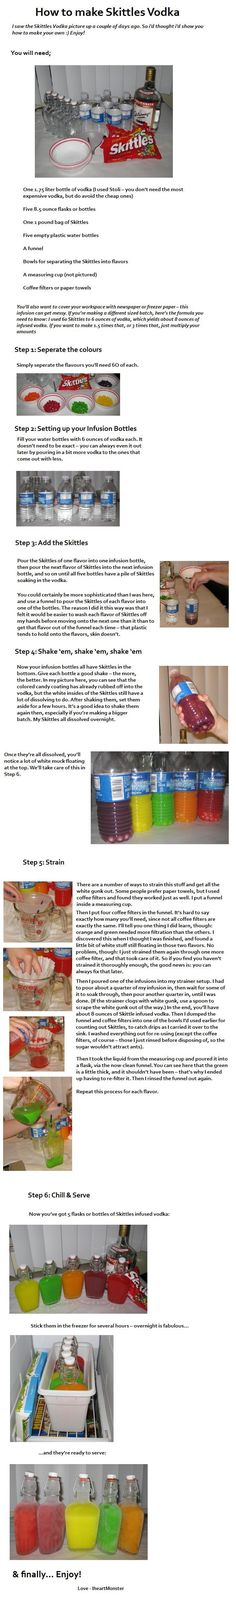 how to make skittles vodka in the dishwasher